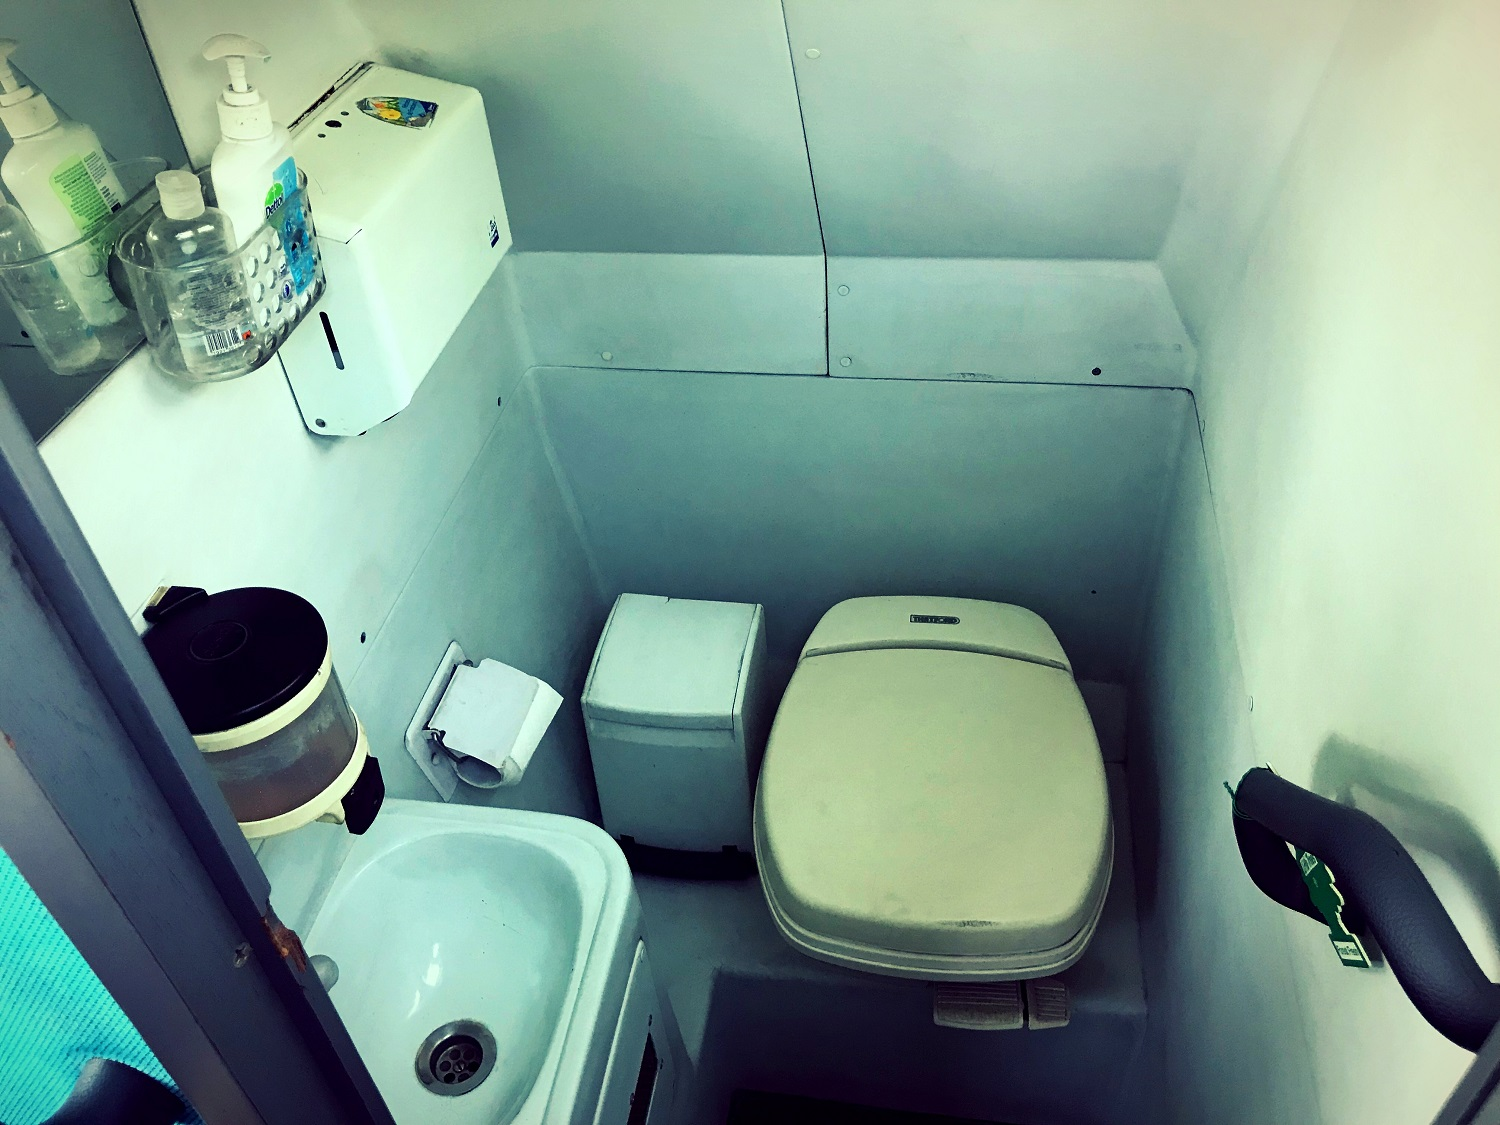 A view of the toilet in Advanced Travel's 49 seater Scania Irizar coach, which is available for coach hire in Sheffield. There is a small cubicle with a hand rail leading into it. There is a toilet, toilet roll dispenser, sink, soap dispenser and hand towel dispenser. There is also a waste paper bin and some additional soaps and cleaning products. There is a small mirror above the sink.